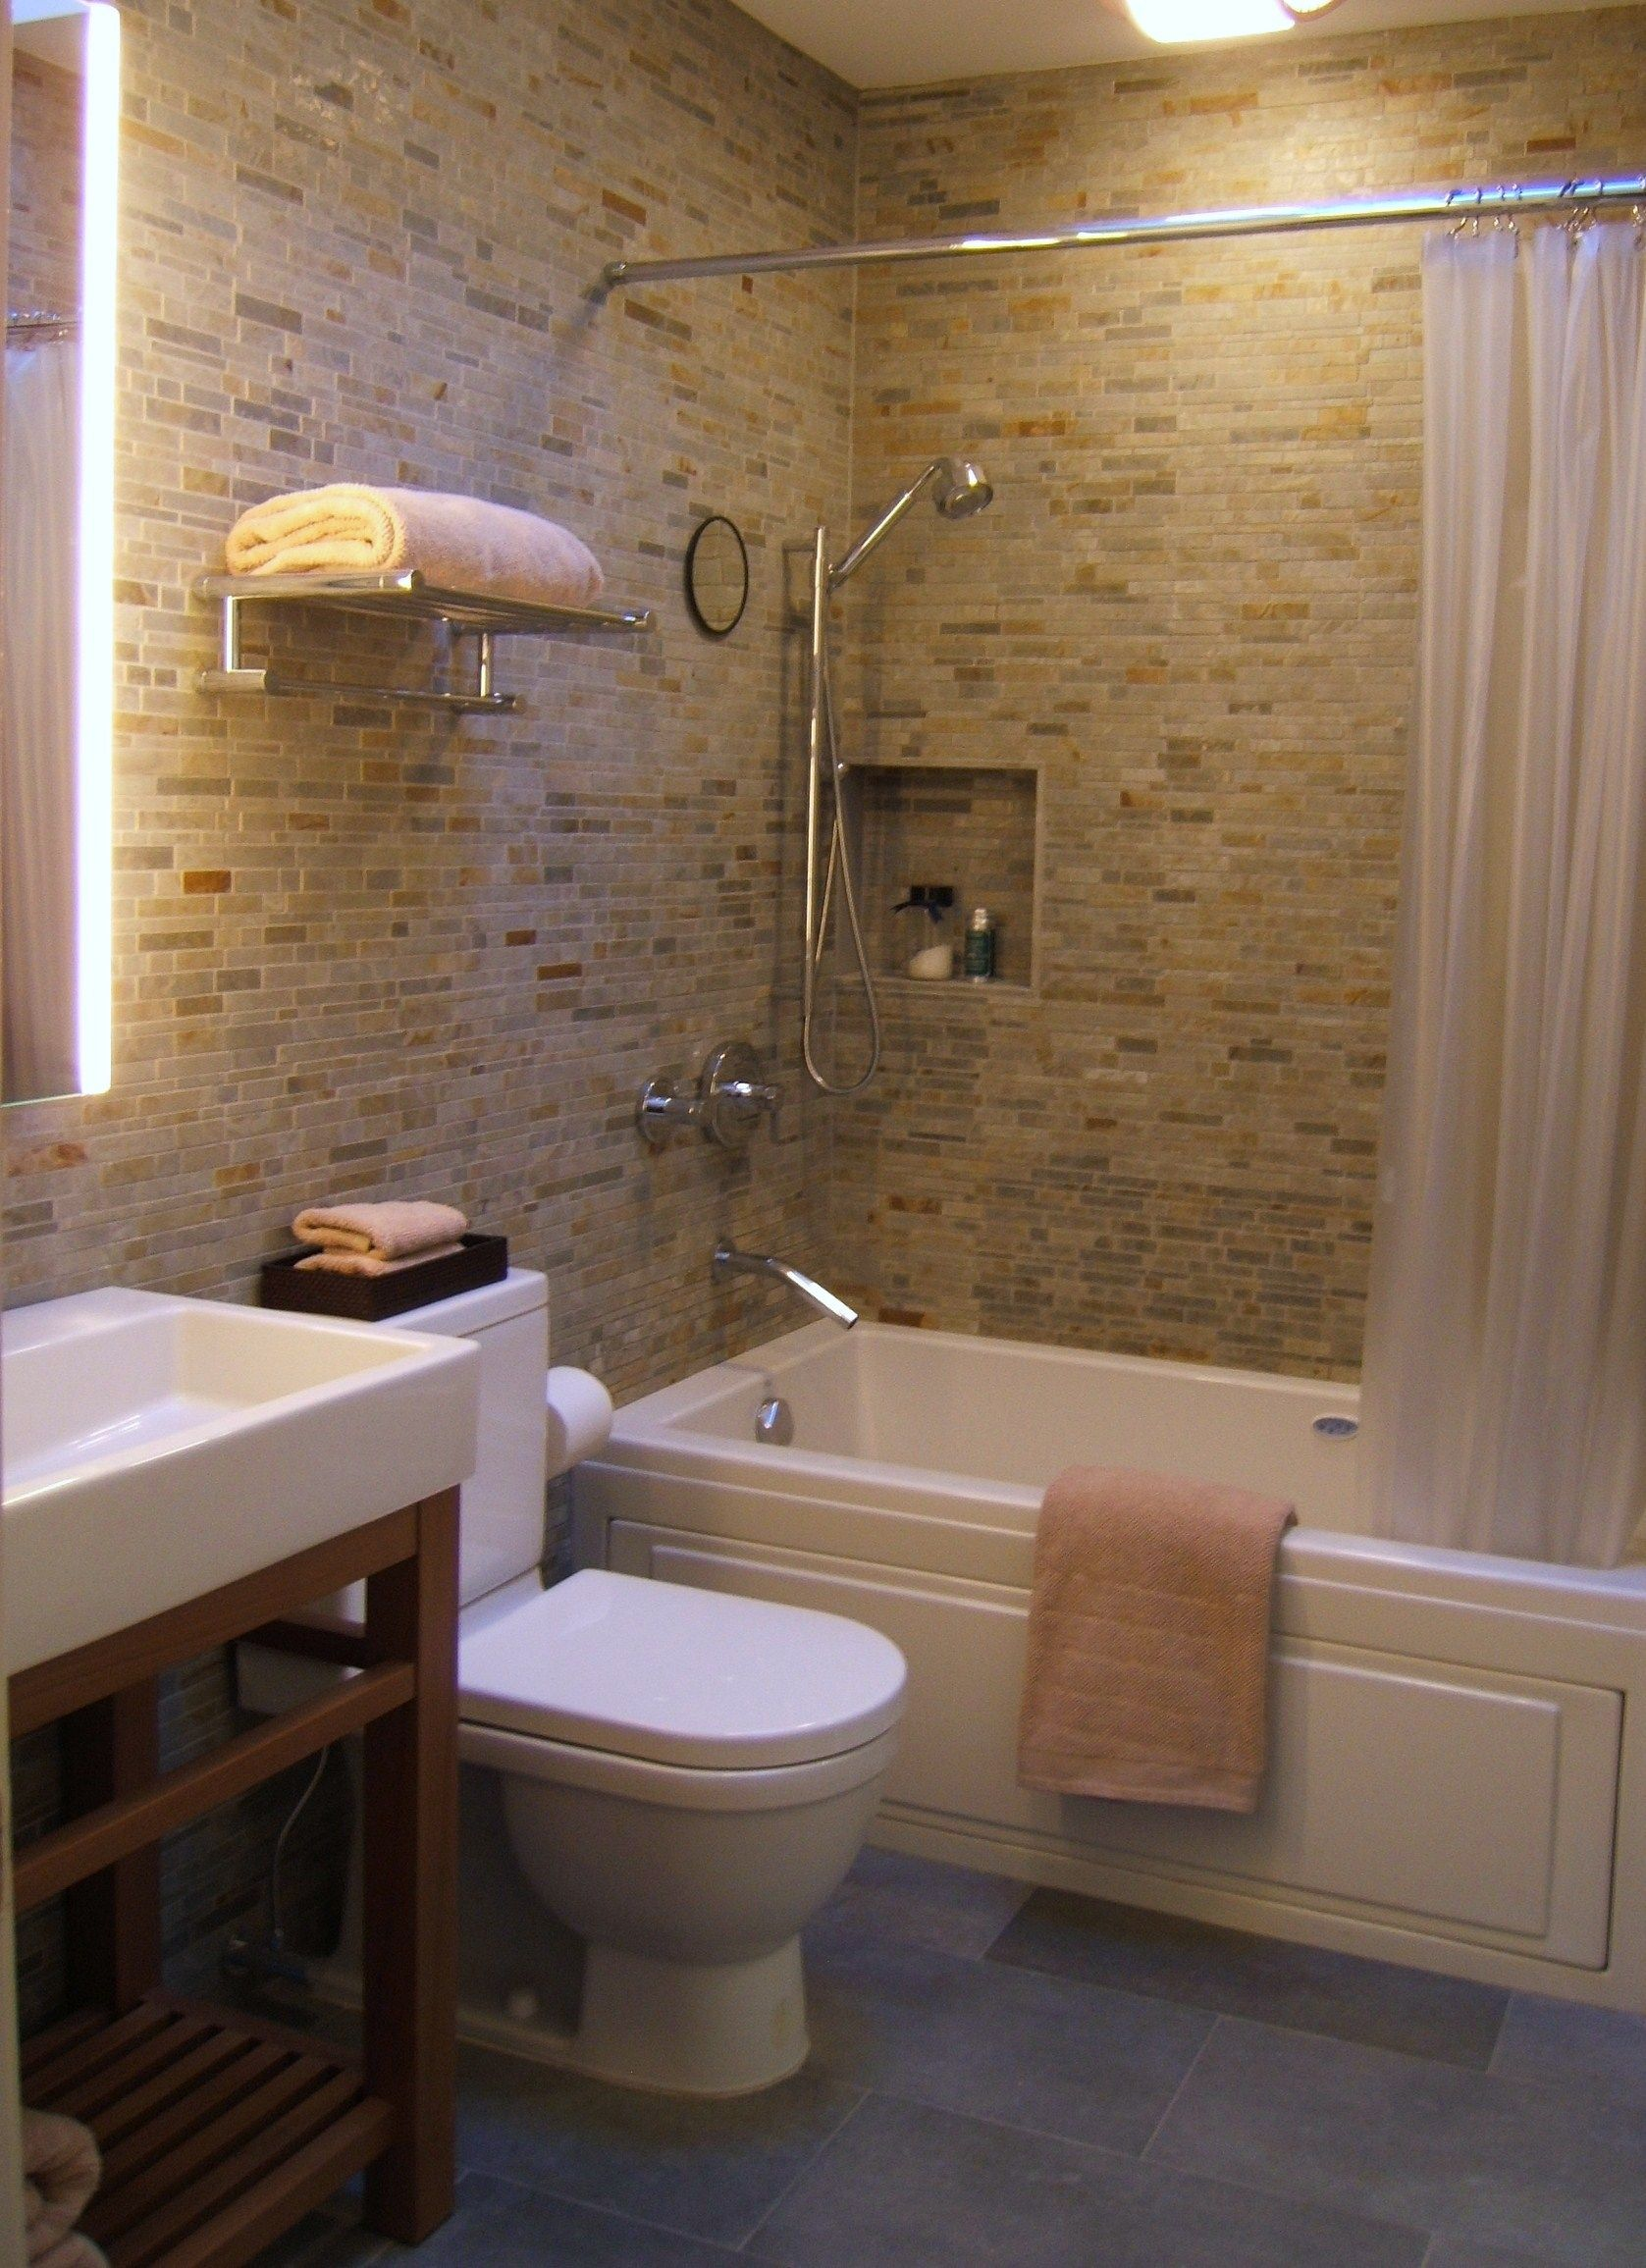 Small bathroom designs south africa small bath for Small bathroom upgrade ideas